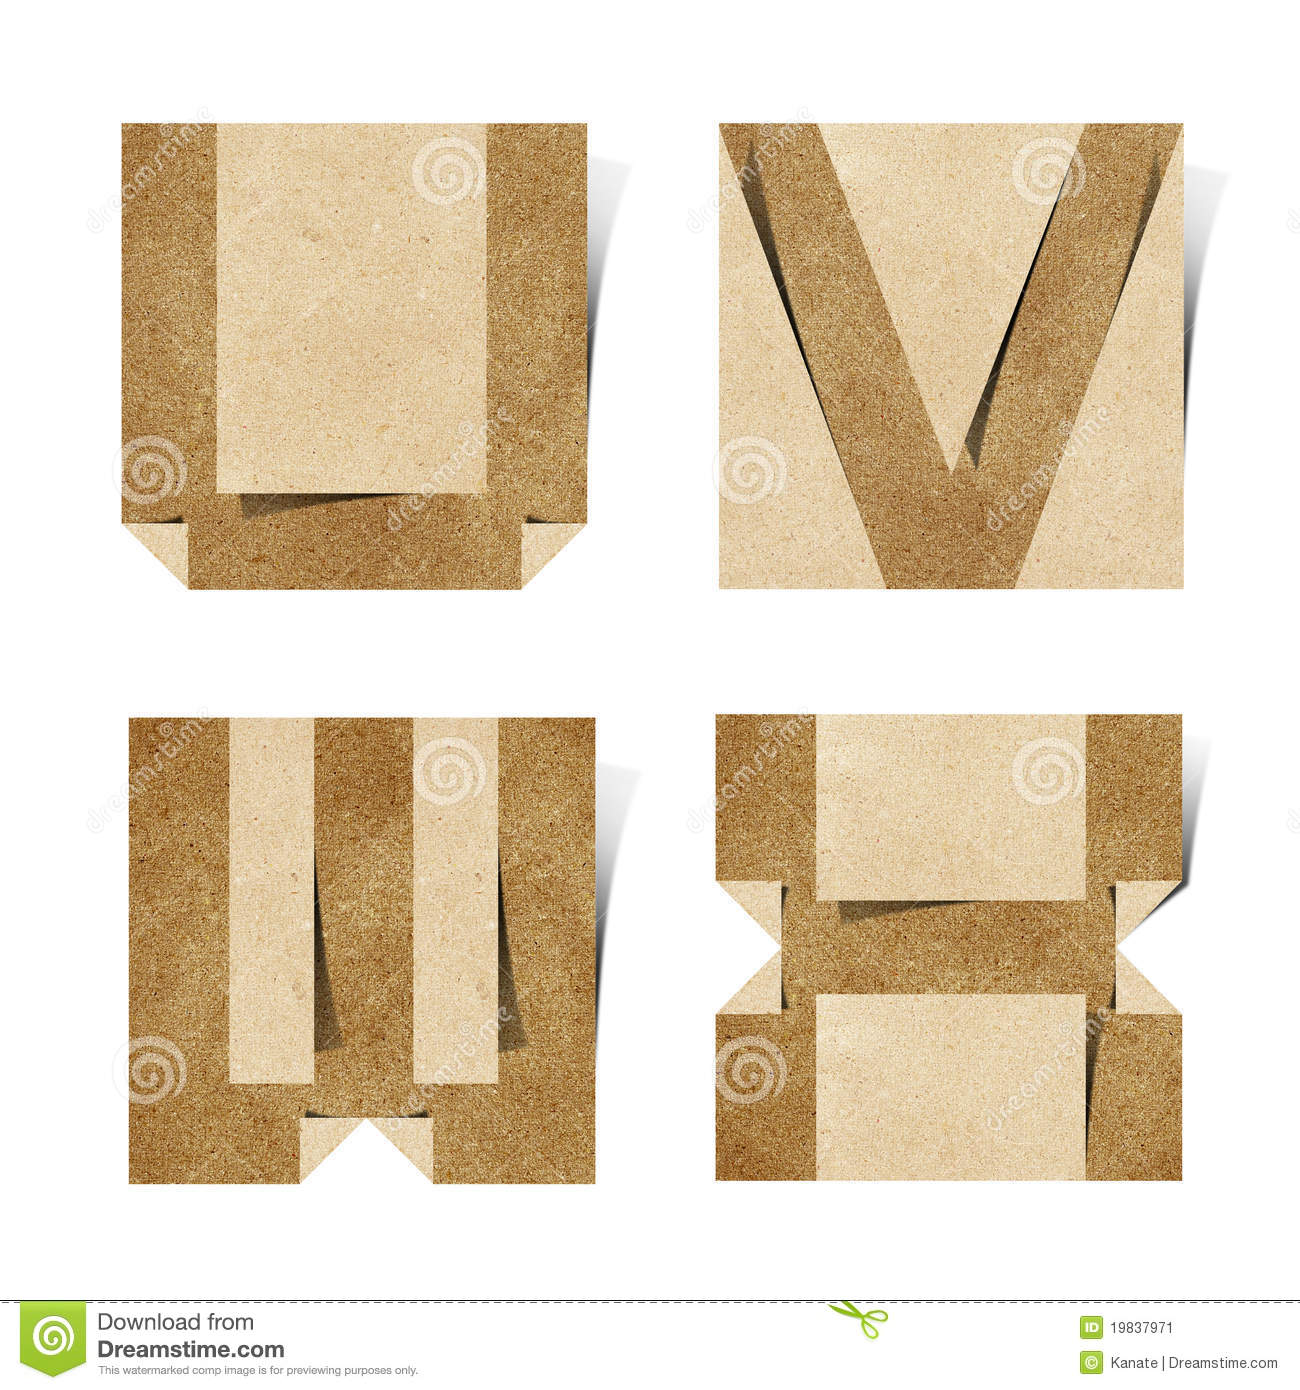 Origami alphabet letters recycled paper craft stock image for Alphabet letters cardboard